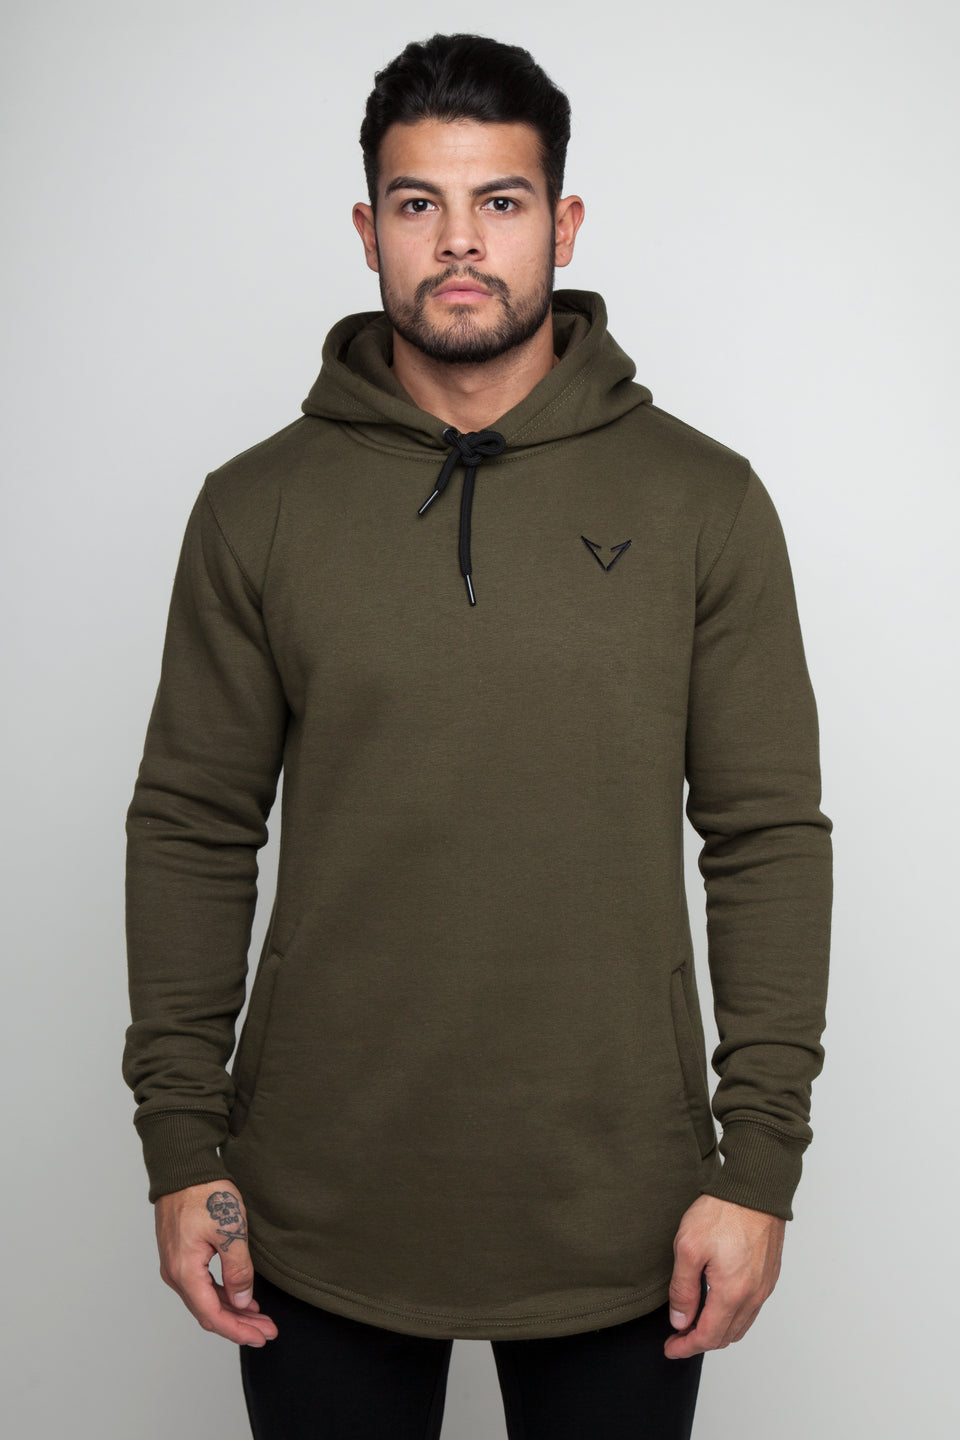 Vypex creed fitted mens gym hoodie khaki green